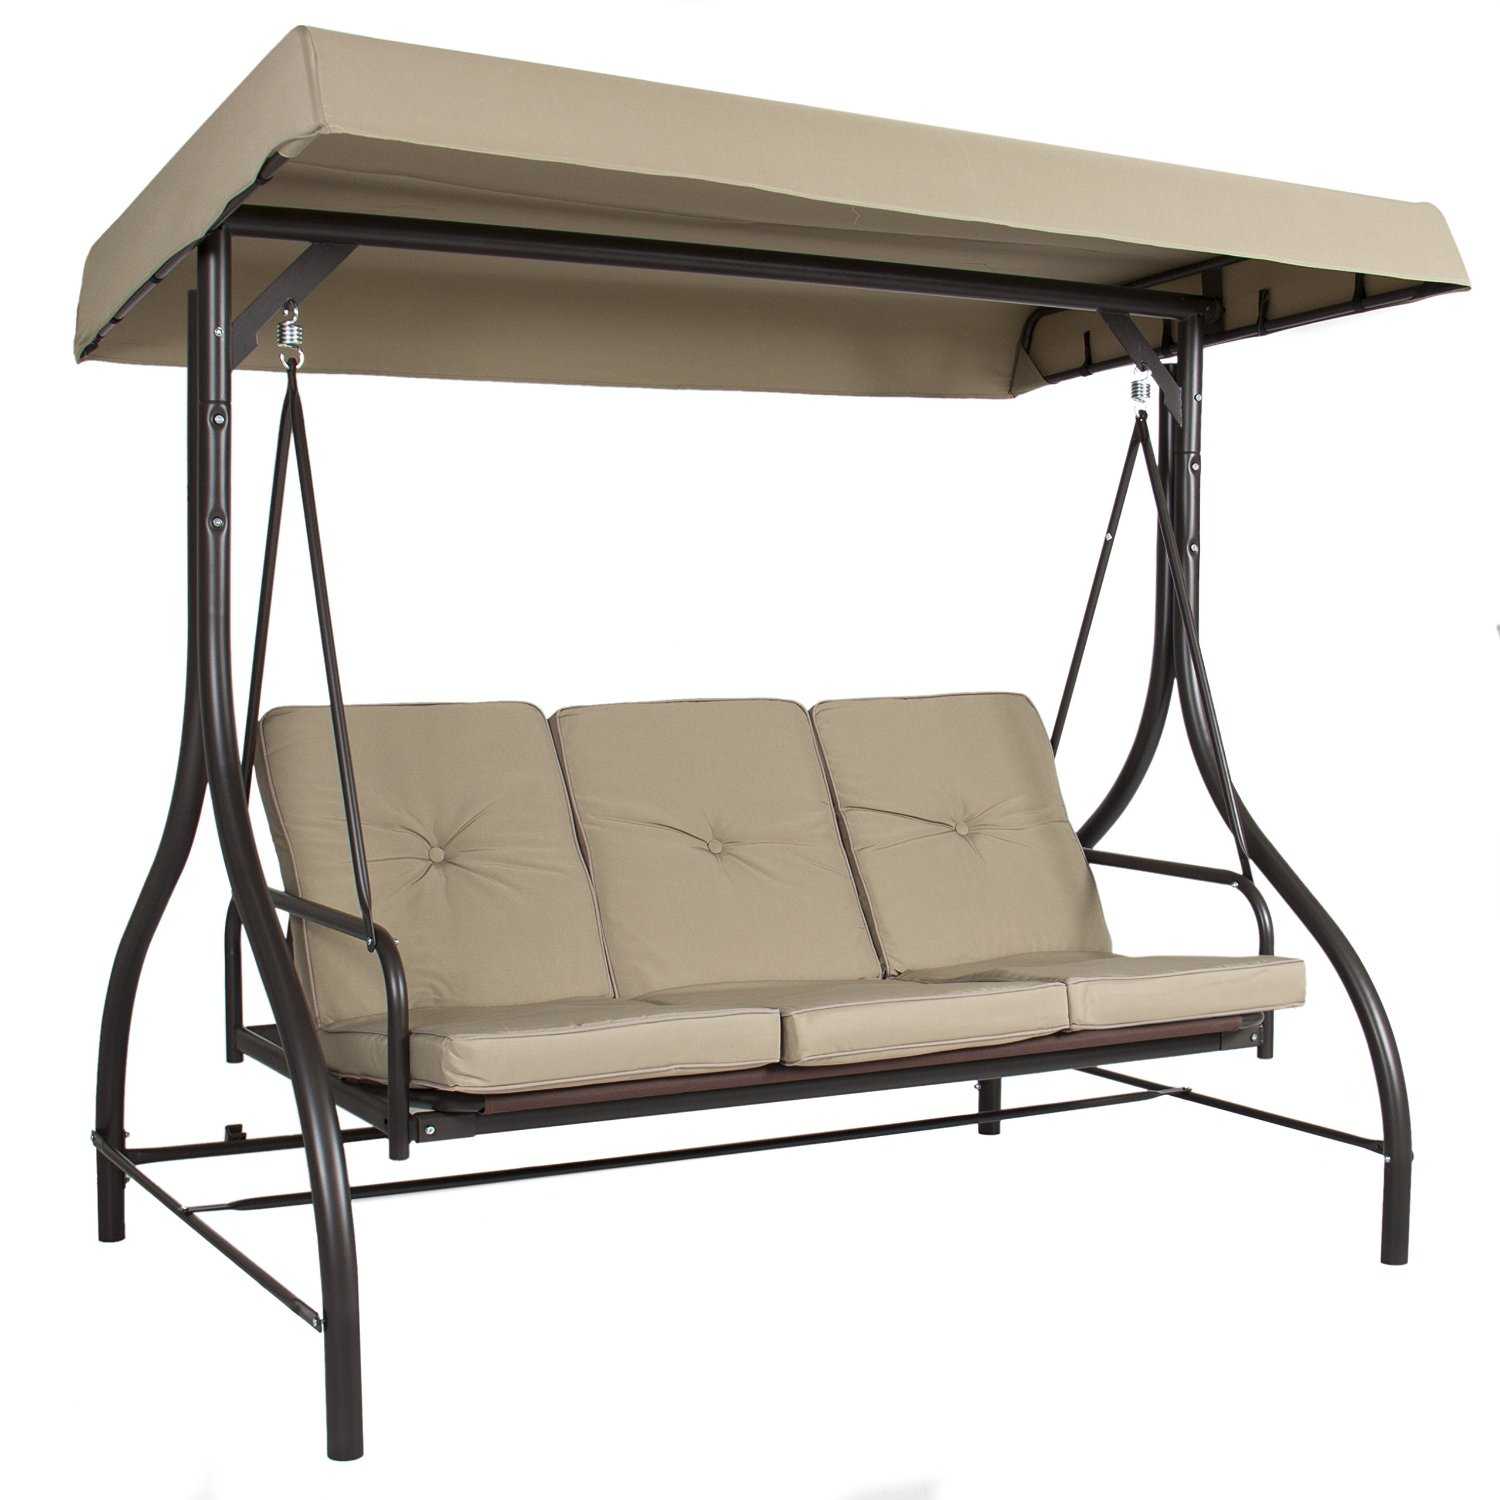 Outdoor Chair With Canopy Outdoor 3 Person Patio Porch Swing Hammock Bench Canopy